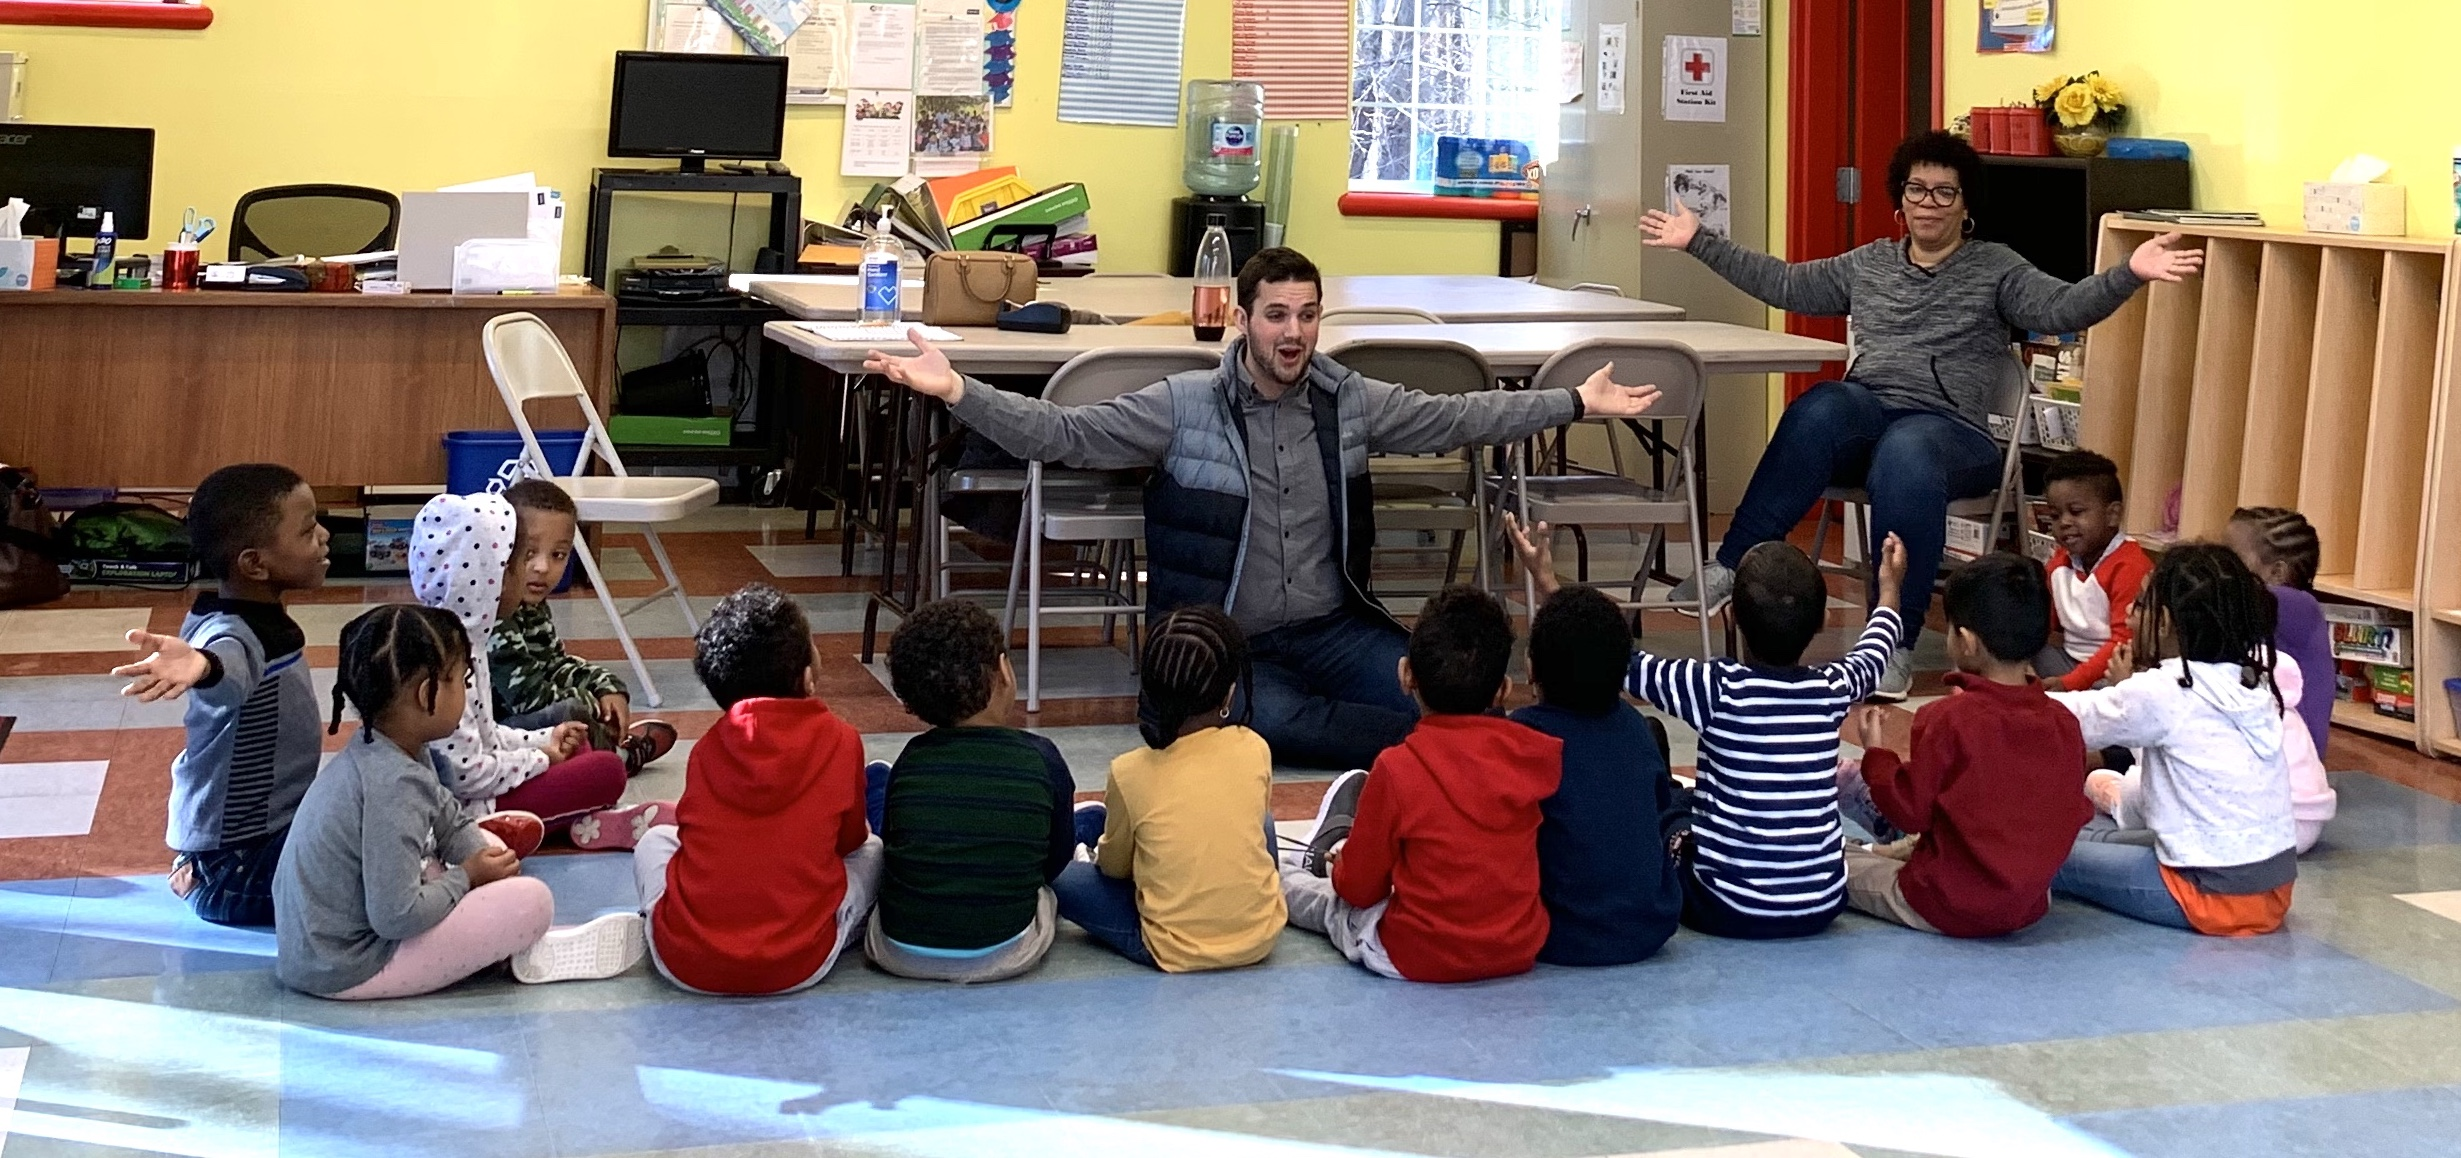 Wesley teaches an early childhood music class for the Tapestry Music Program